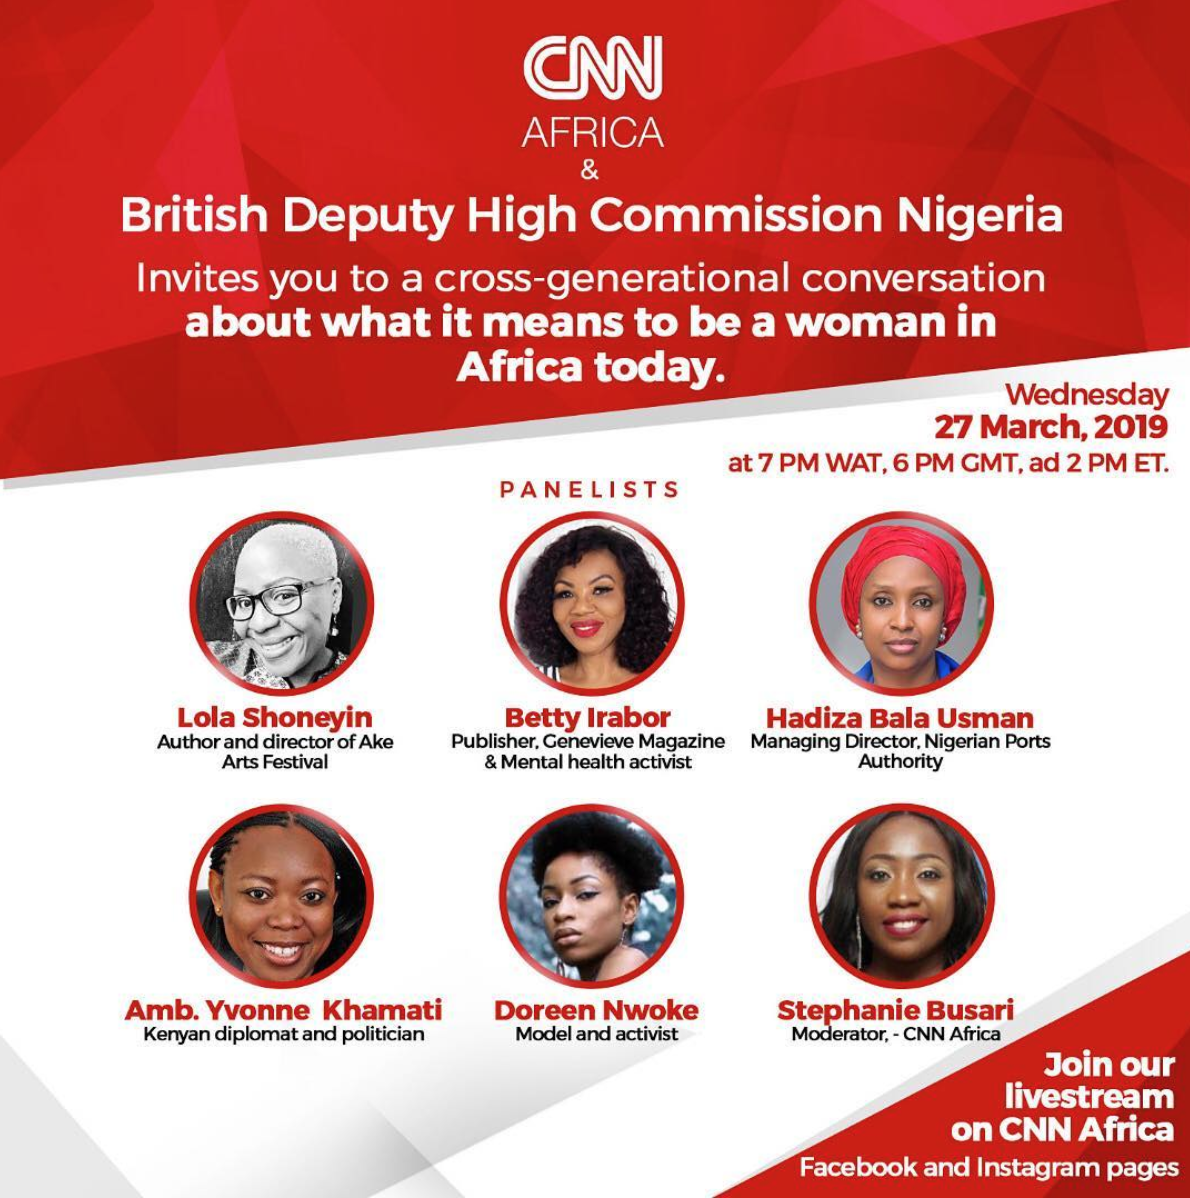 Join Betty Irabor, Lola Shoneyin, Hadiza Bala Usman, Yvonne Khamati & Doreen Nwoke for a Night of Cross-Generational Conversation  | March 27th